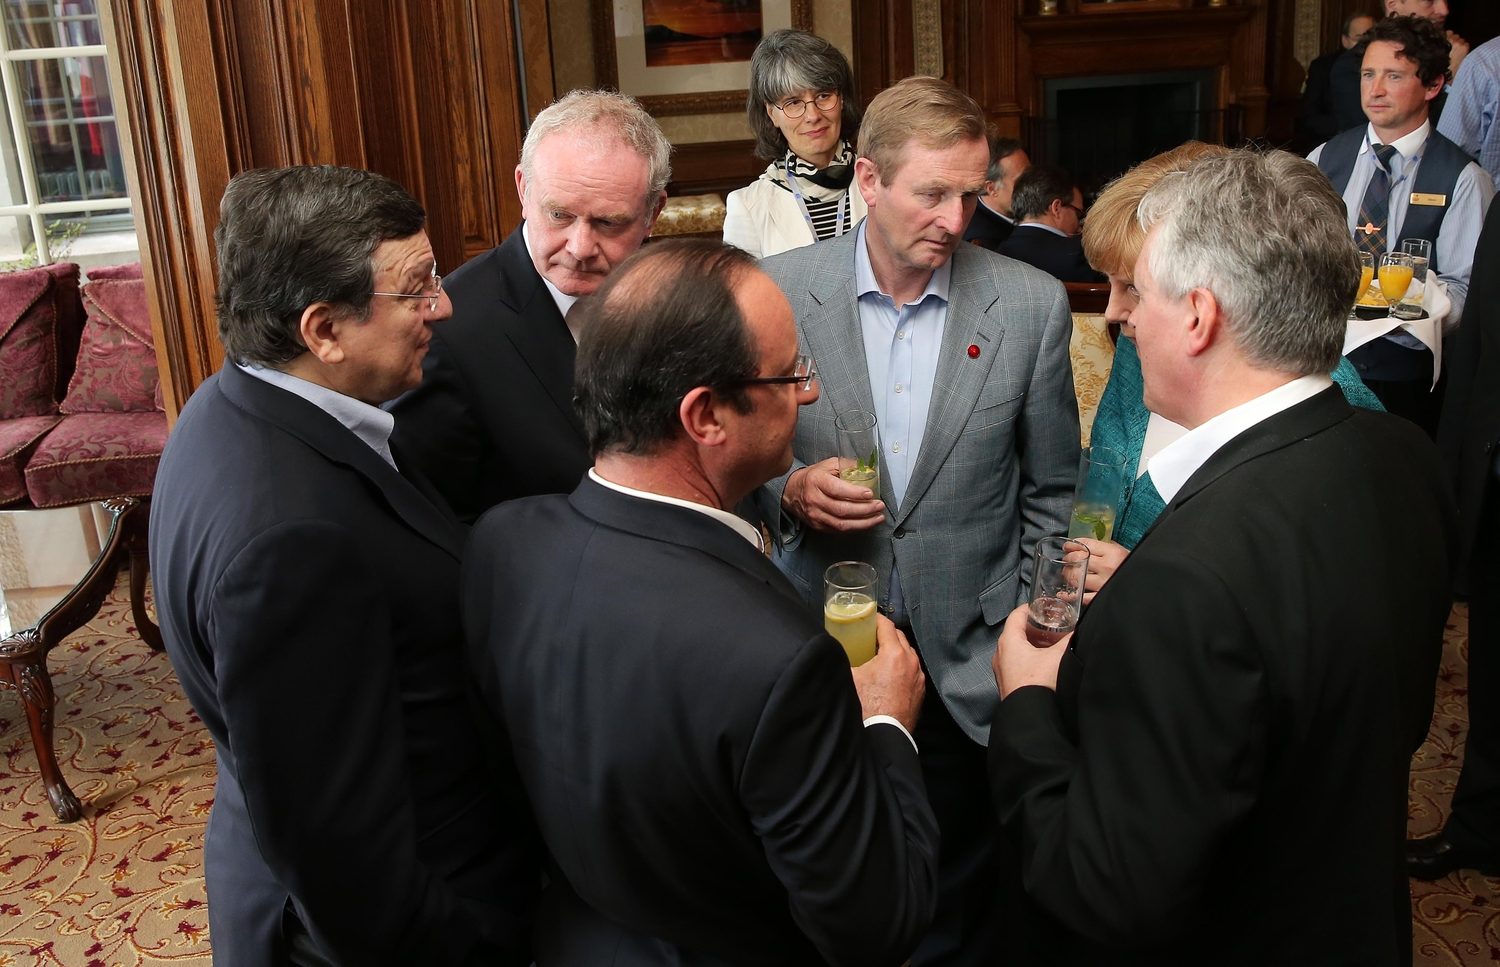 Peter Robinson, Martin McGuinness and Enda Kenny in Fermanagh last month with EC President Jose Manuel Barroso, German Chancellor Angela Merkel and French President Francois Hollande